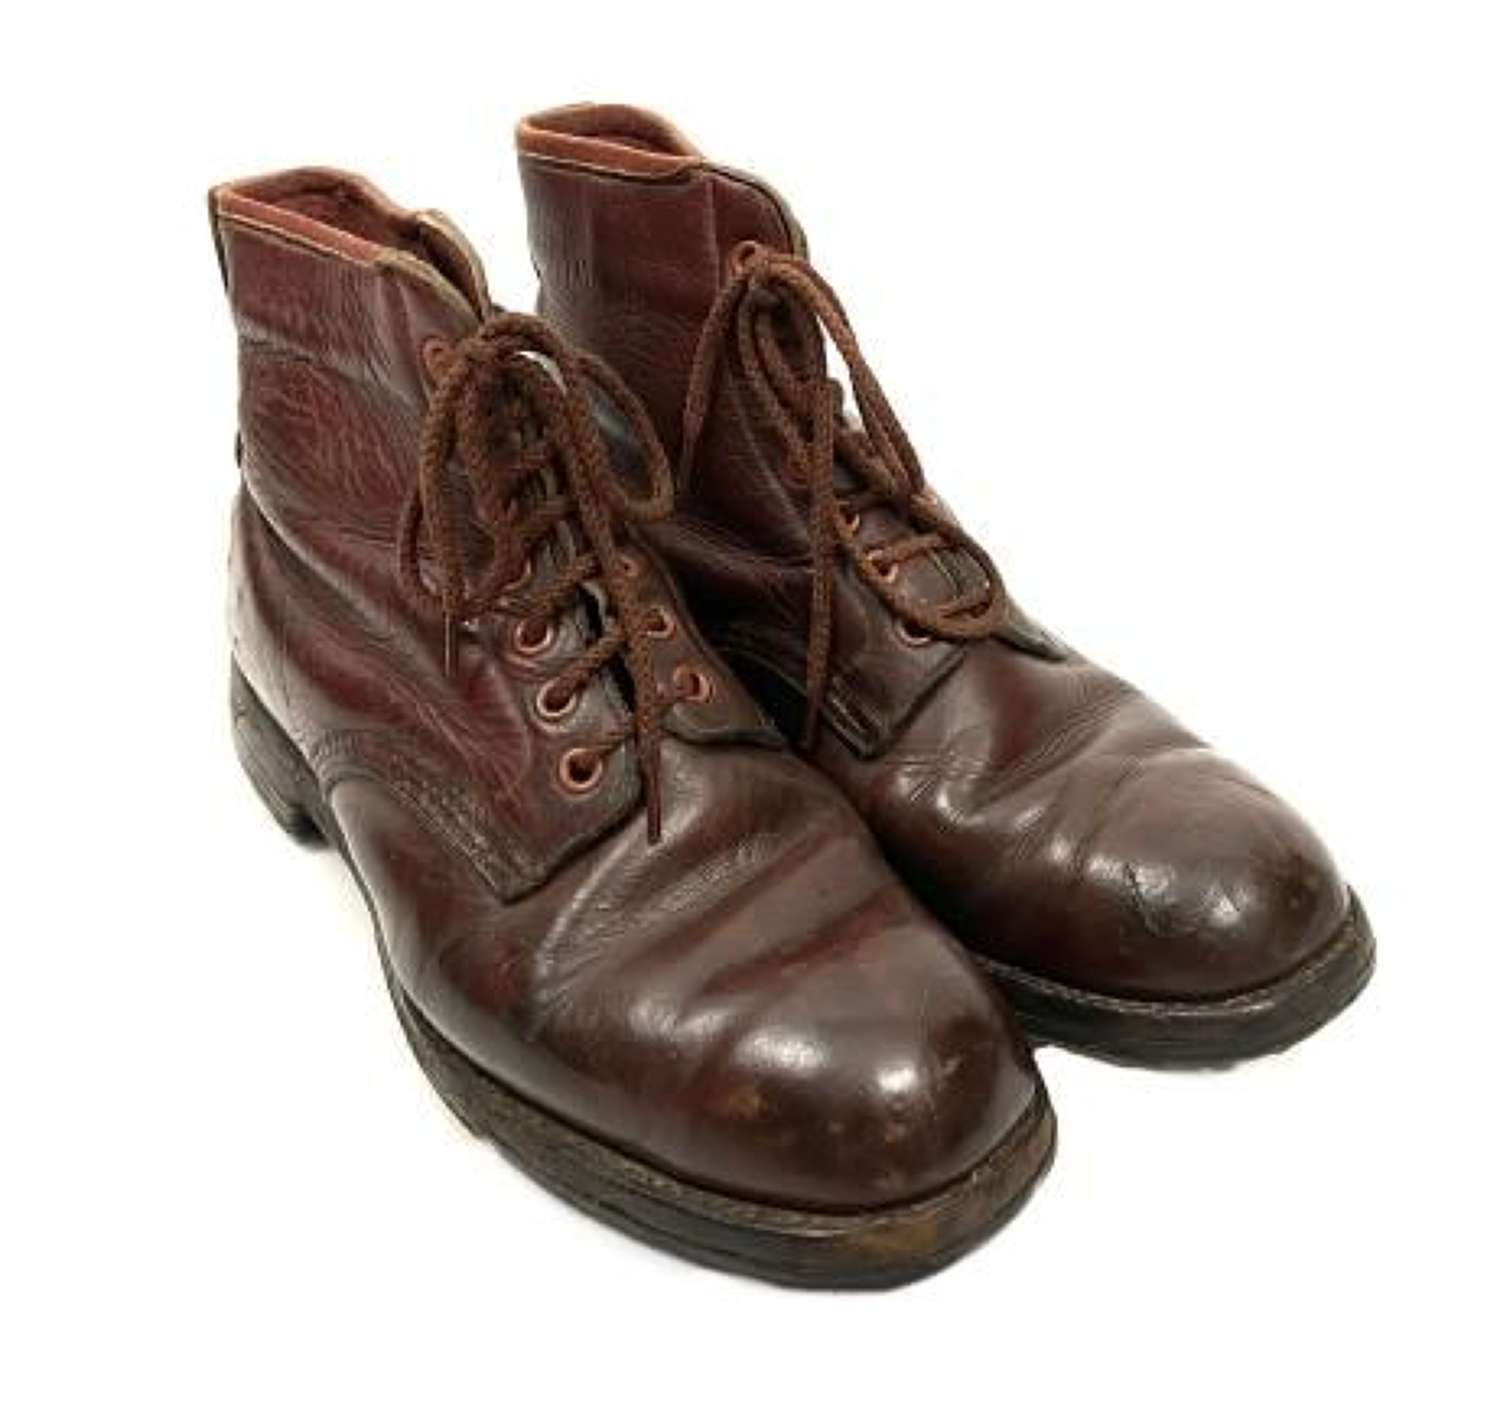 Original 1950s Brown British Made Ankle Boots